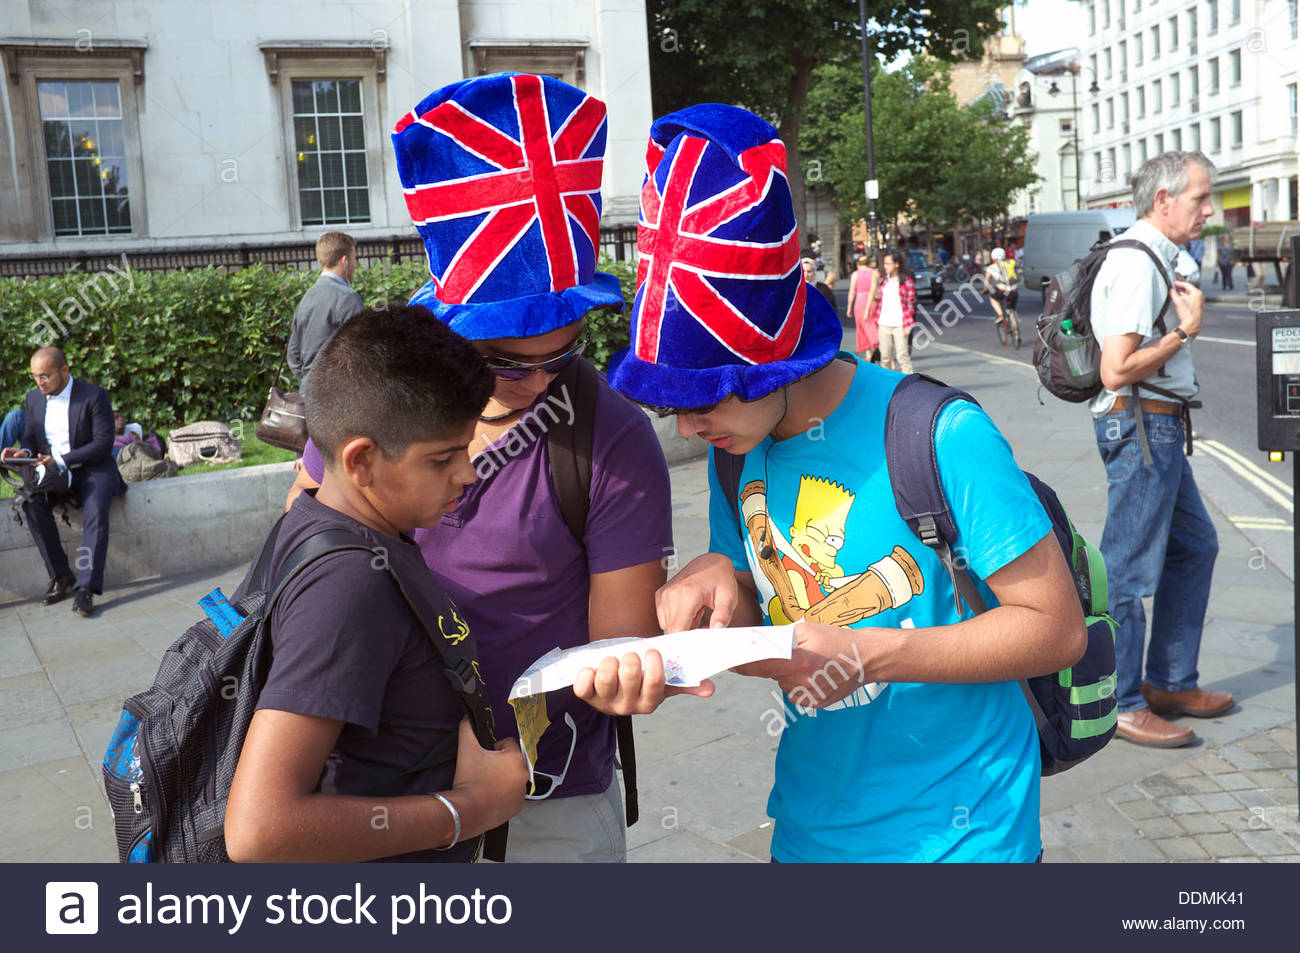 Young tourists consult their map, in Trafalgar Square, London, UK. Stock Photo